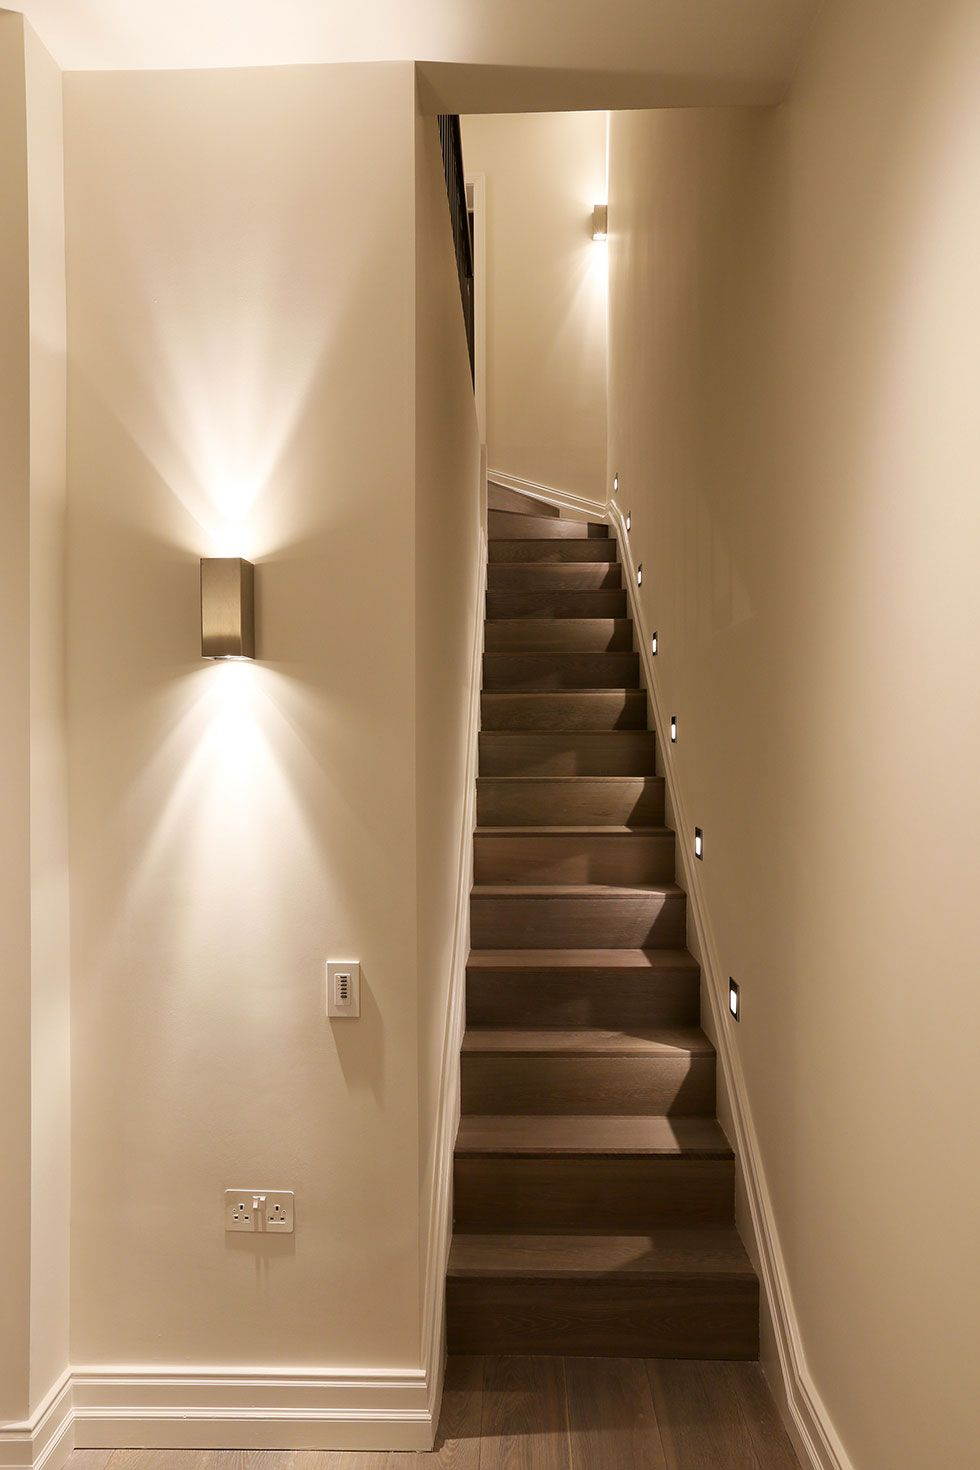 Lighting Wall Lights 10 Most Popular Light For Stairways Ideas Let S Take A Look